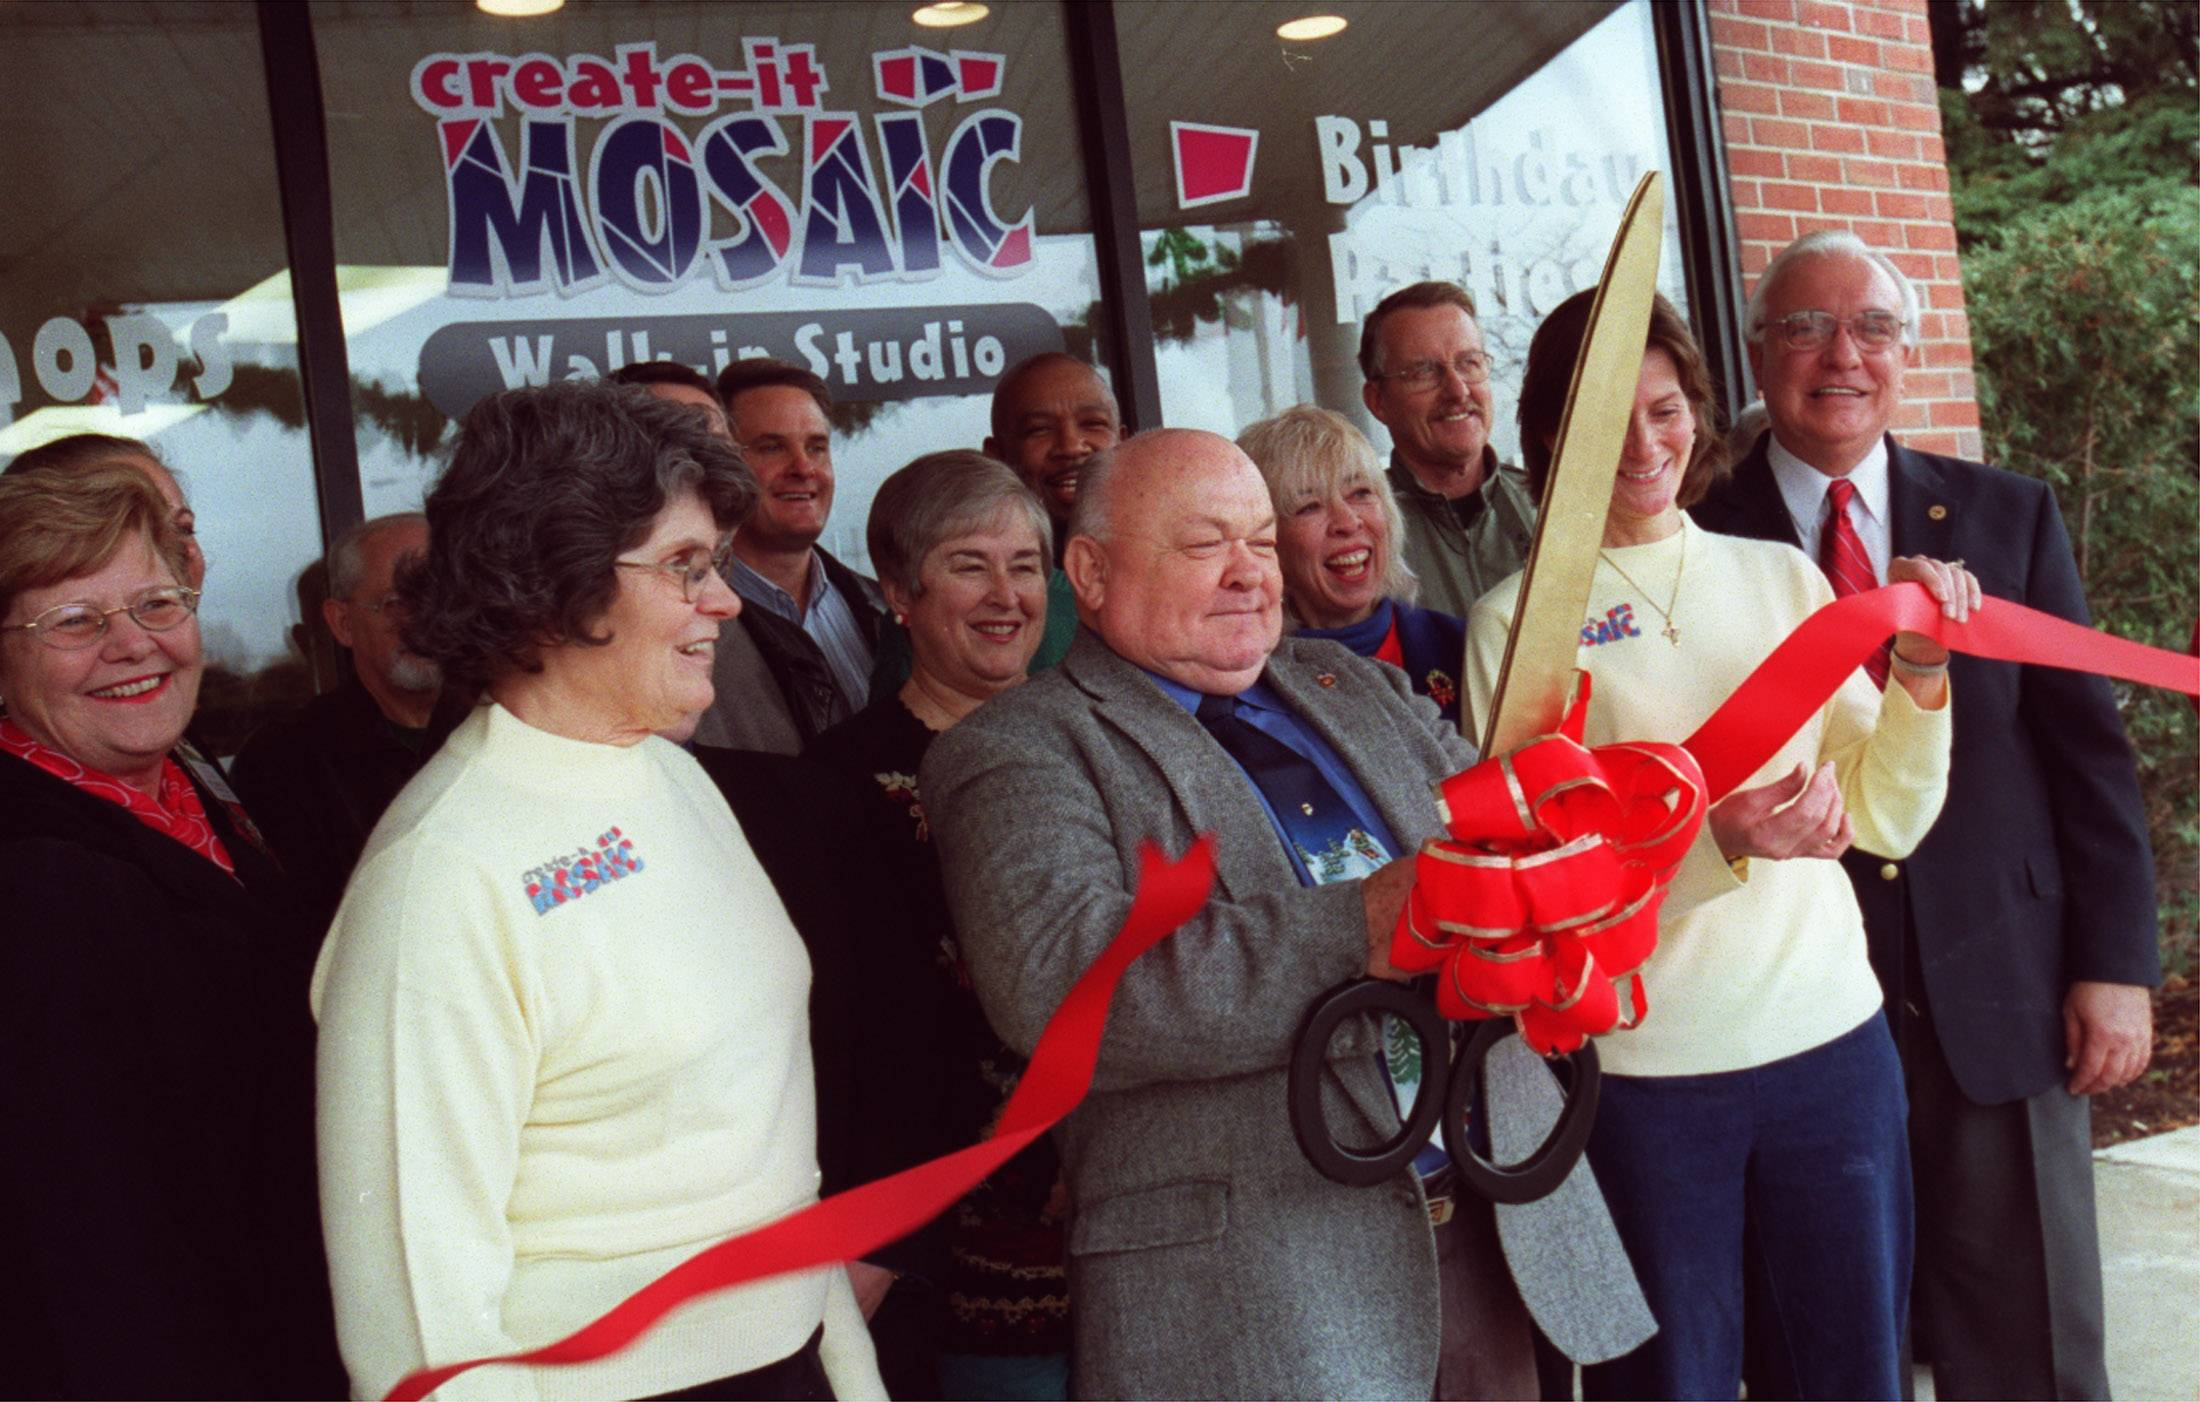 During all his nearly 20 years as Naperville mayor, George Pradel has been known to make time for ribbon cuttings at new businesses, such as this event in December 2003 at Create-a-Mosaic.